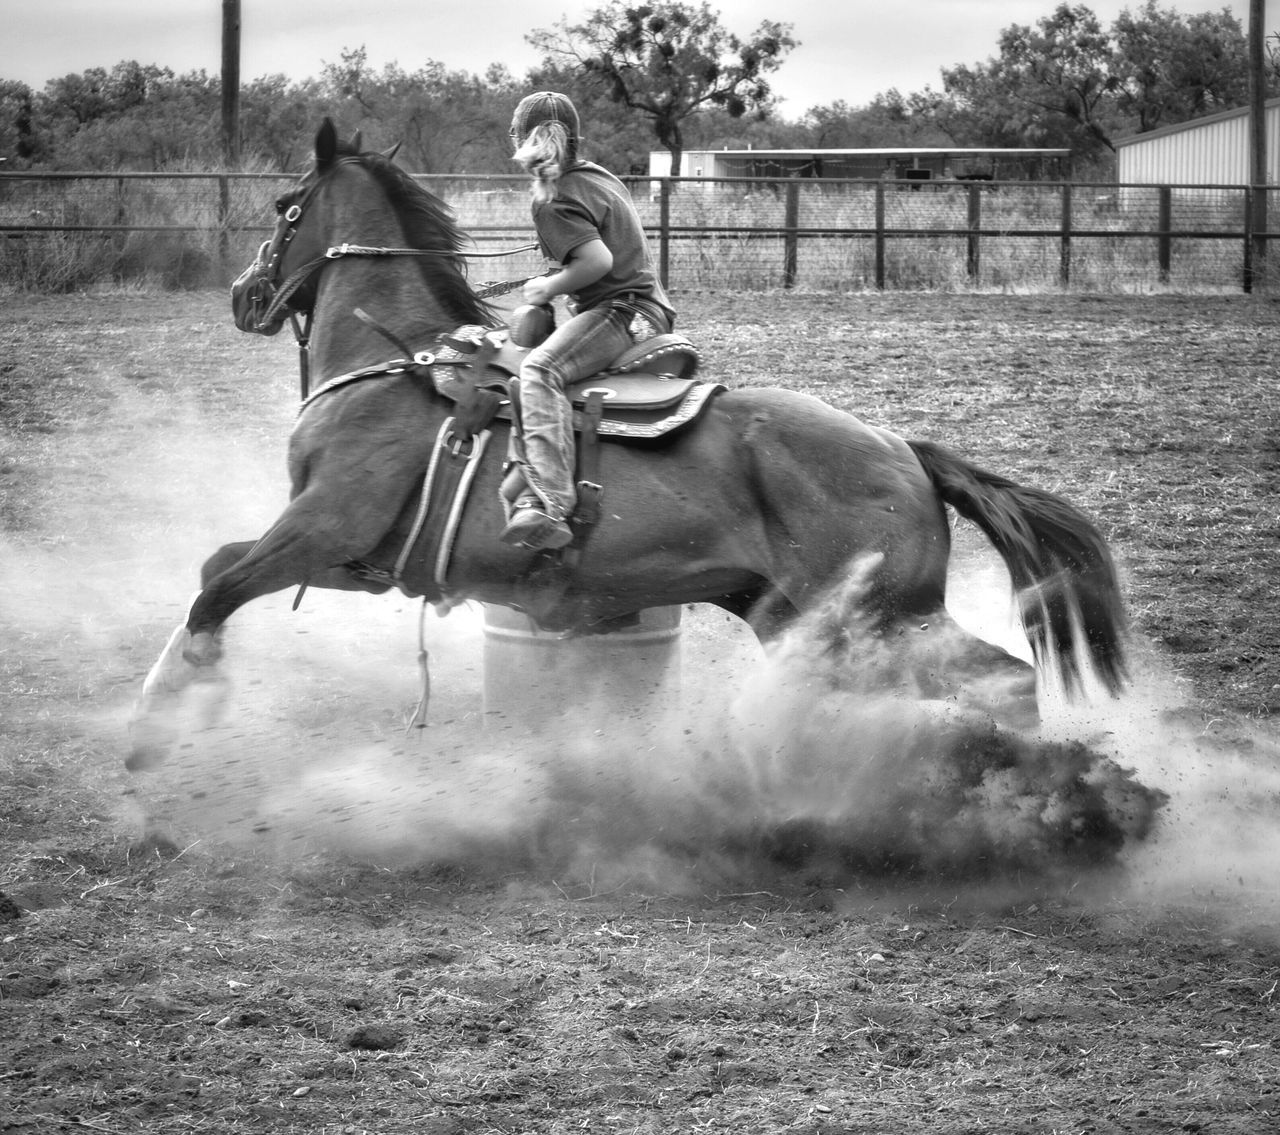 West Texas Horselove Horselovers Bronte Texas Horse Riding Photoart Fine Art Photography Eye4photography  Horse Nikonphotography This Week On Eyeem Rodeo Scene Horses Rodeo! Rodeo Rodeo Time Black And White Collection! Blackandwhite #bnw #monochrome #instablackandwhite #monoart #insta_bw #bnw_society #bw_lover #bw_photooftheday #bw #bw_society #bw_crew #bwwednesday #insta_pick_bw #bwstyles_gf #irox_bw #igersbnw #bwstyleoftheday #monotone #monochromatic#noir #fineart_ph Black & White Black And White Collection